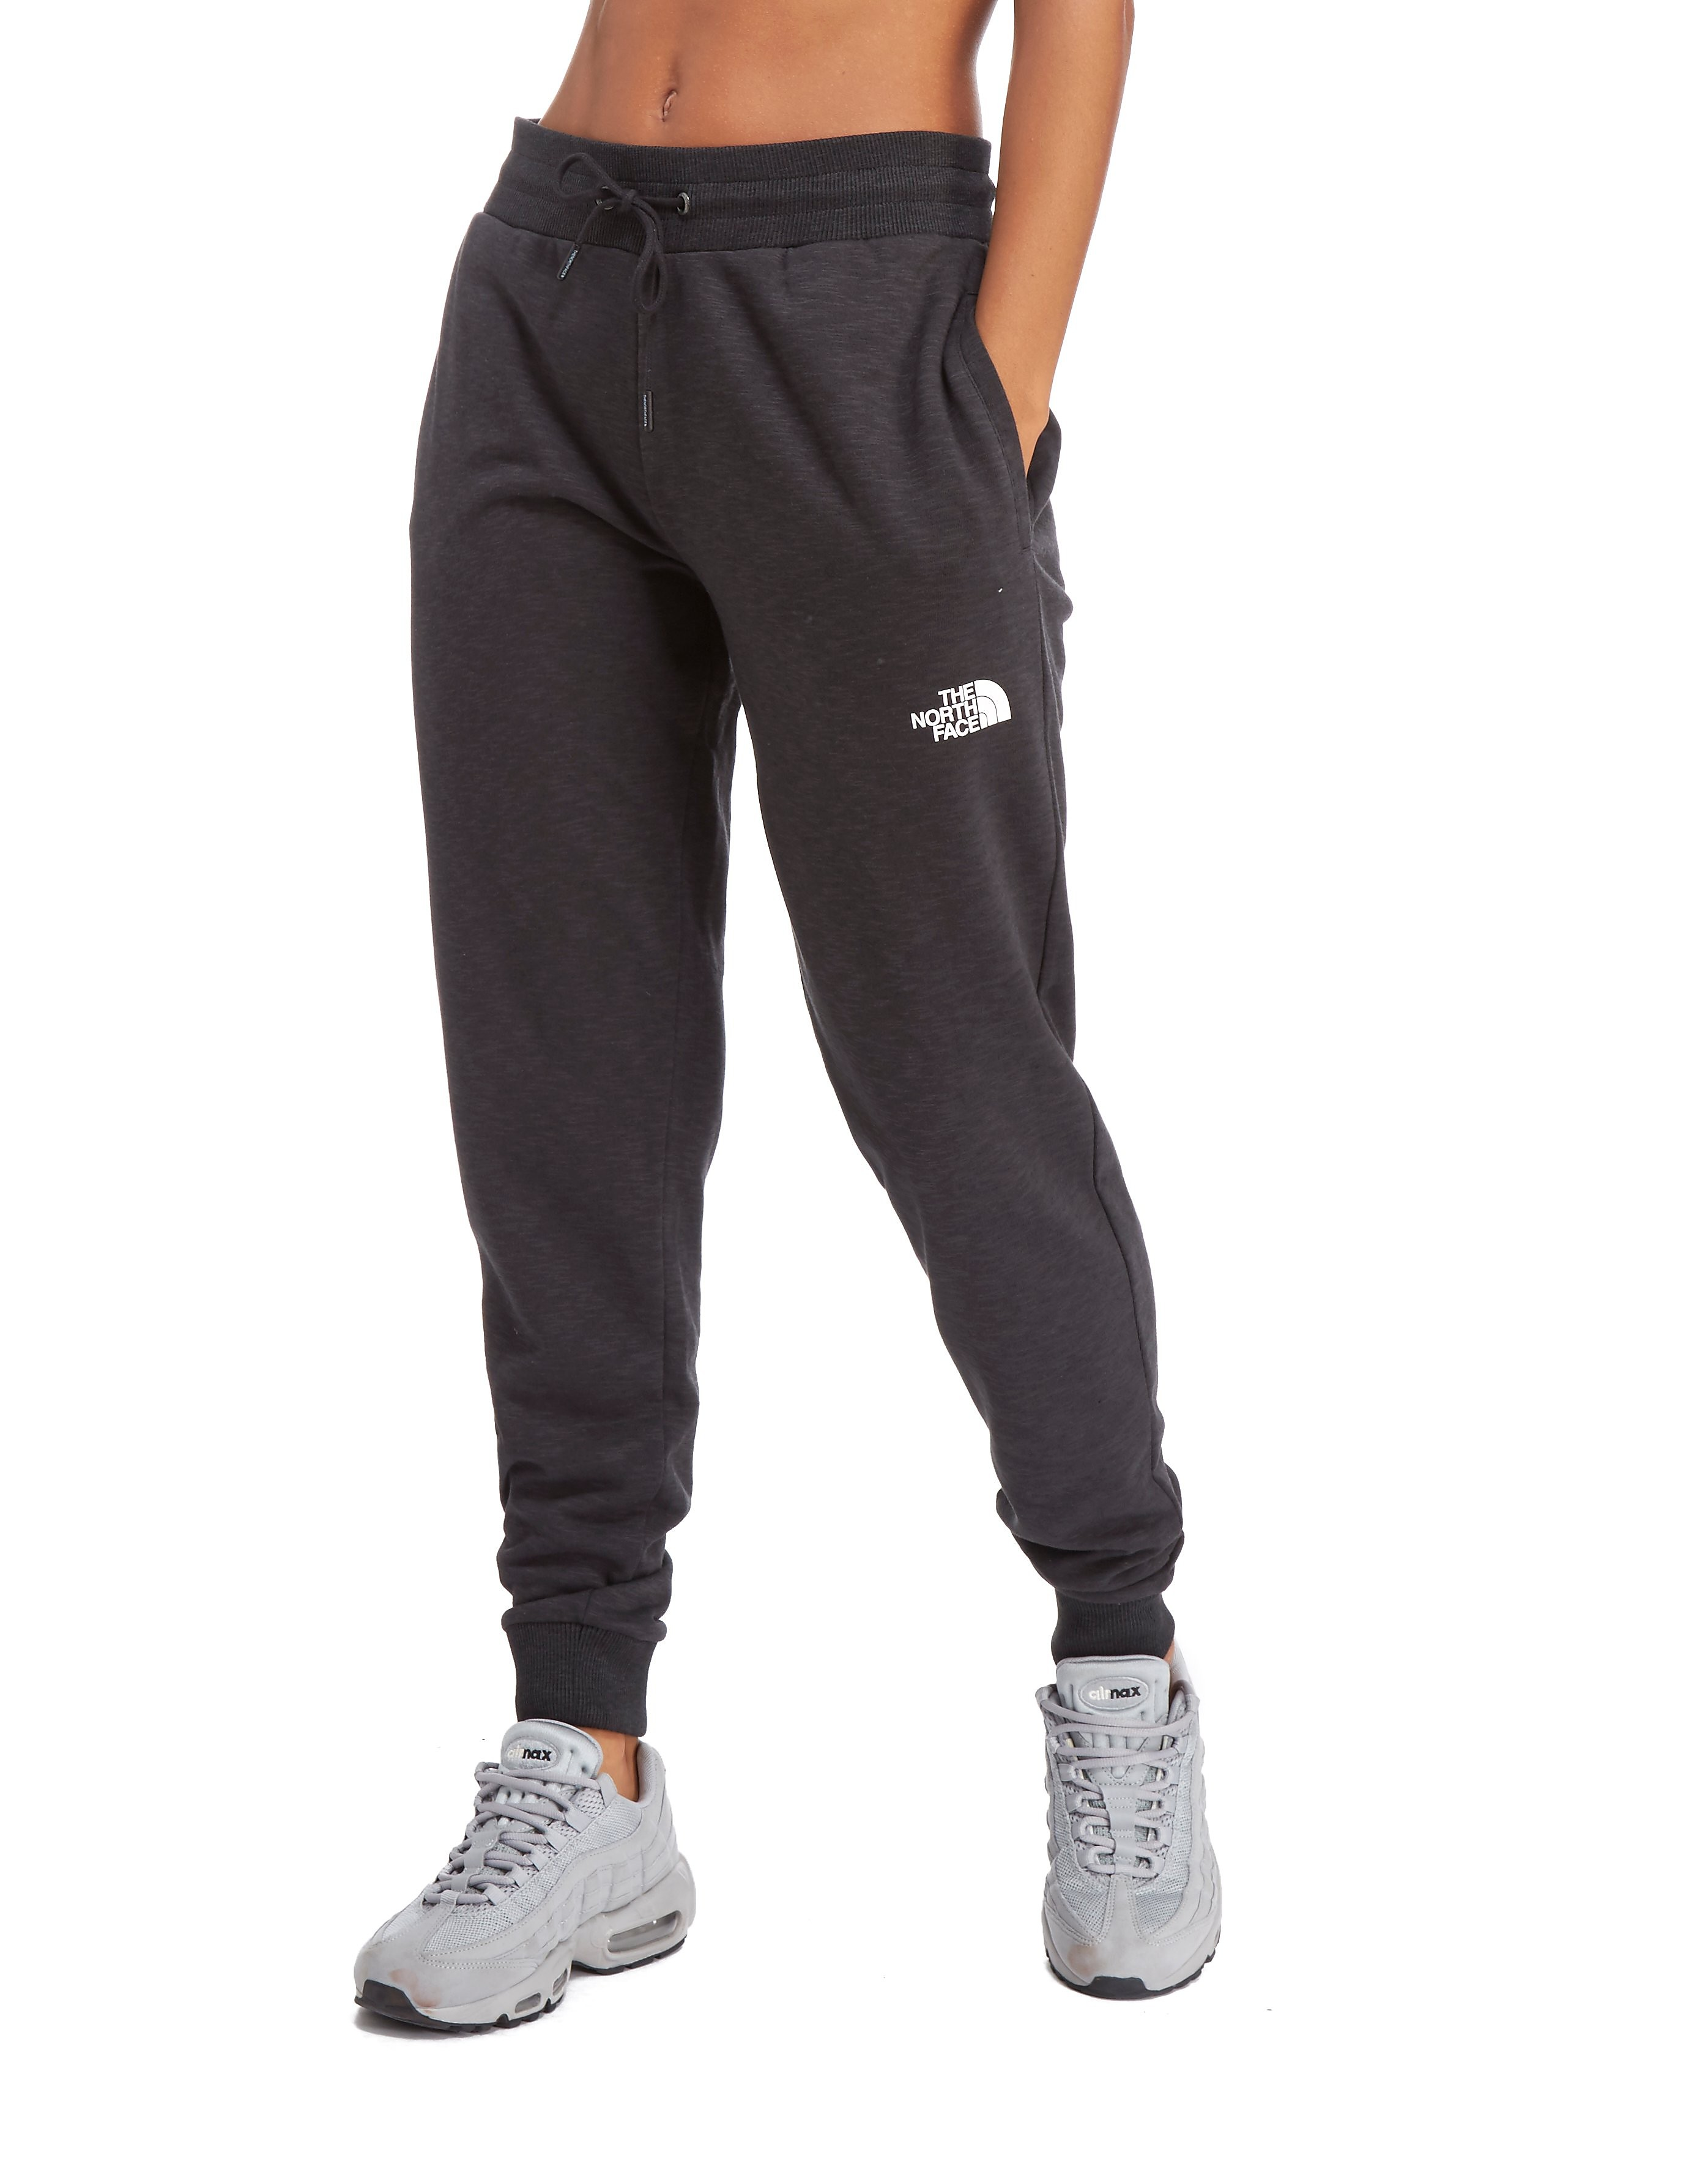 The North Face Pantalon de survêtement Space Dye Fleece Femme